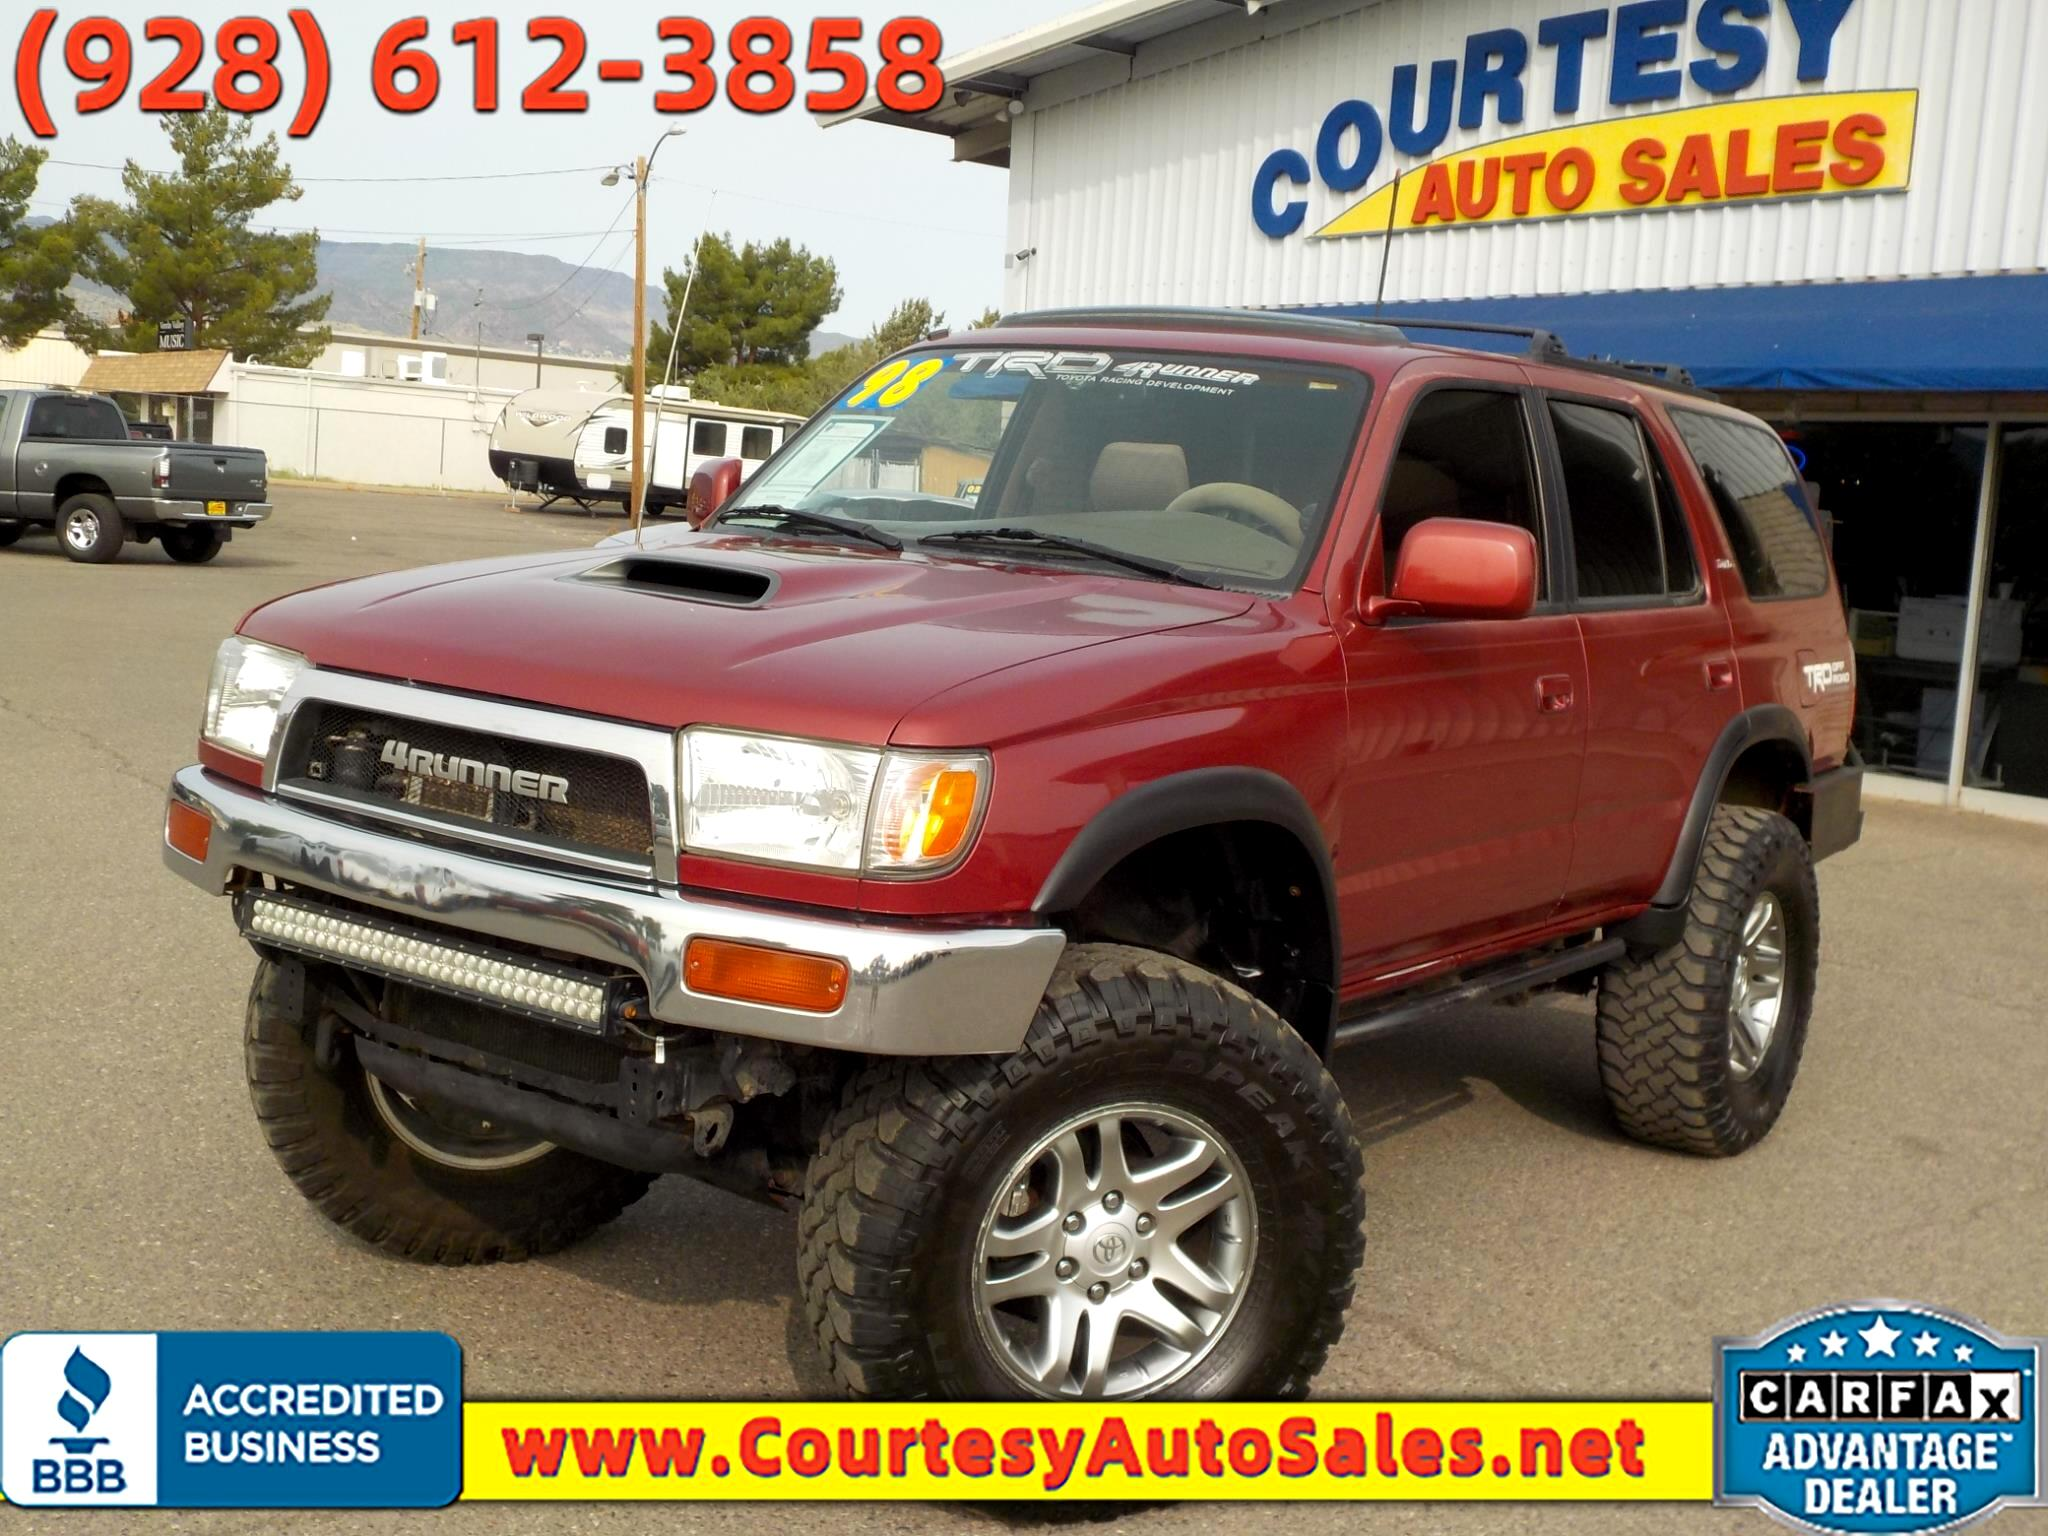 Toyota 4Runner 4dr SR5 3.4L Auto 4WD 1998